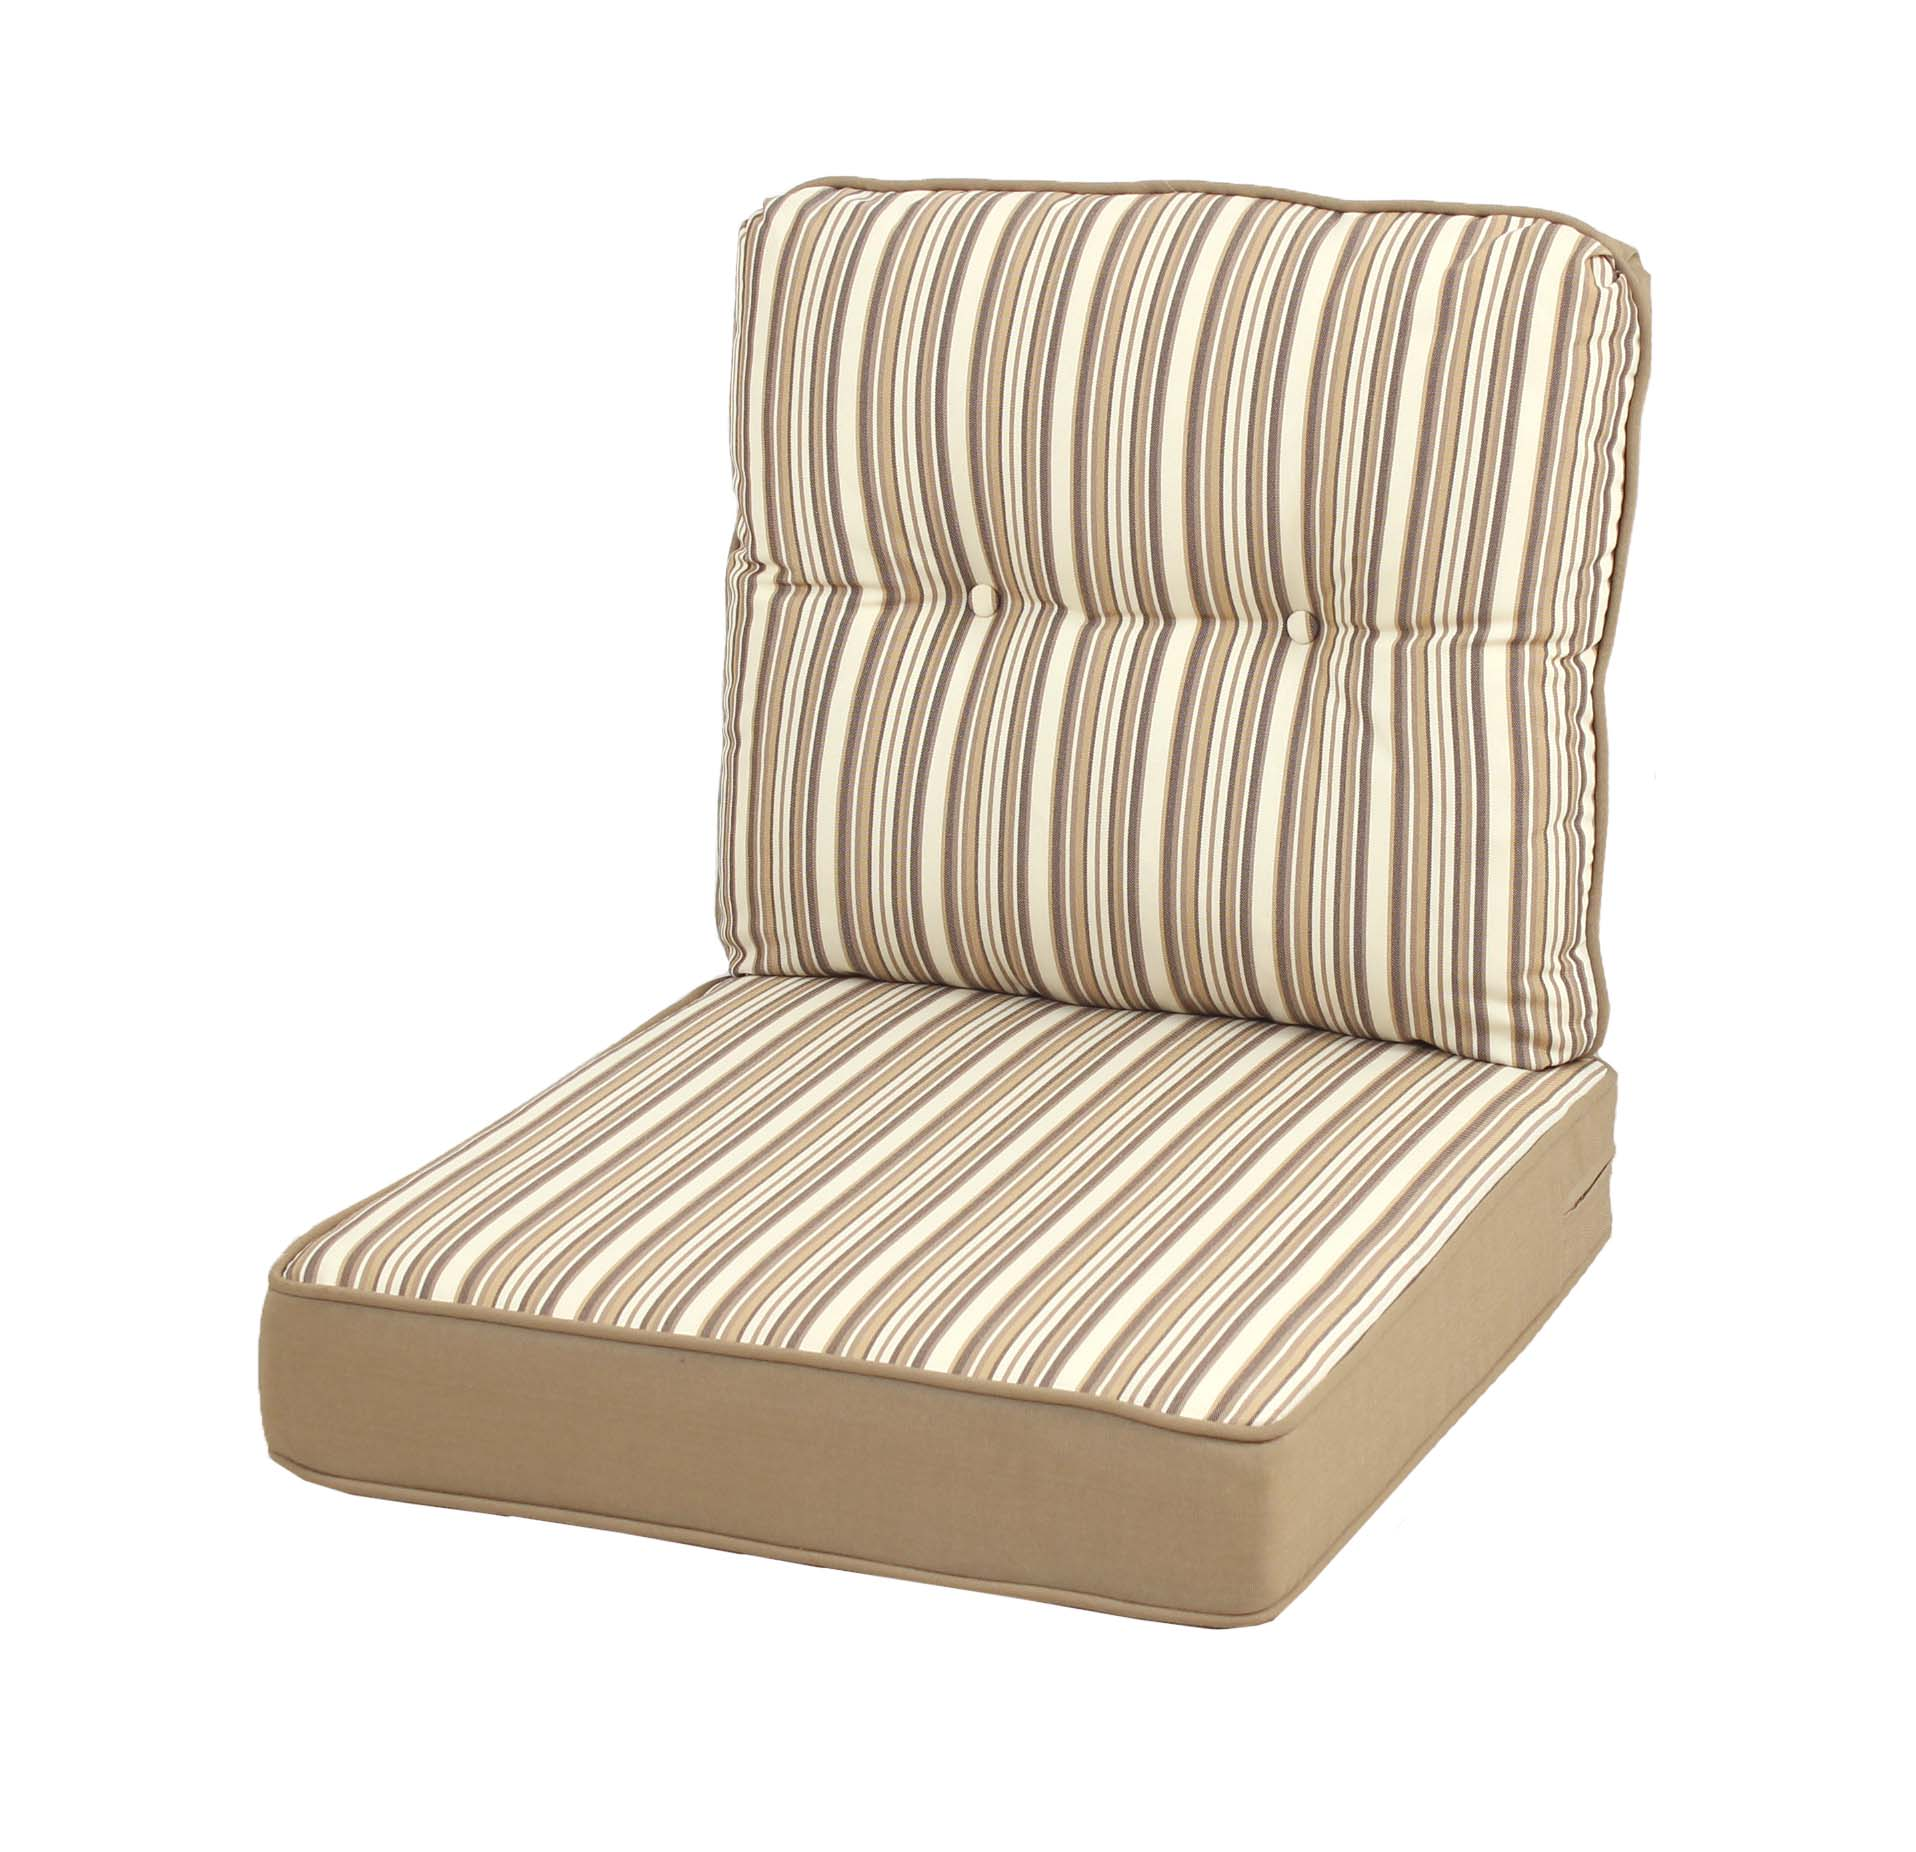 sears patio chair covers upholstery cost ty pennington style mayfield replacement seating cushion - outdoor living ...